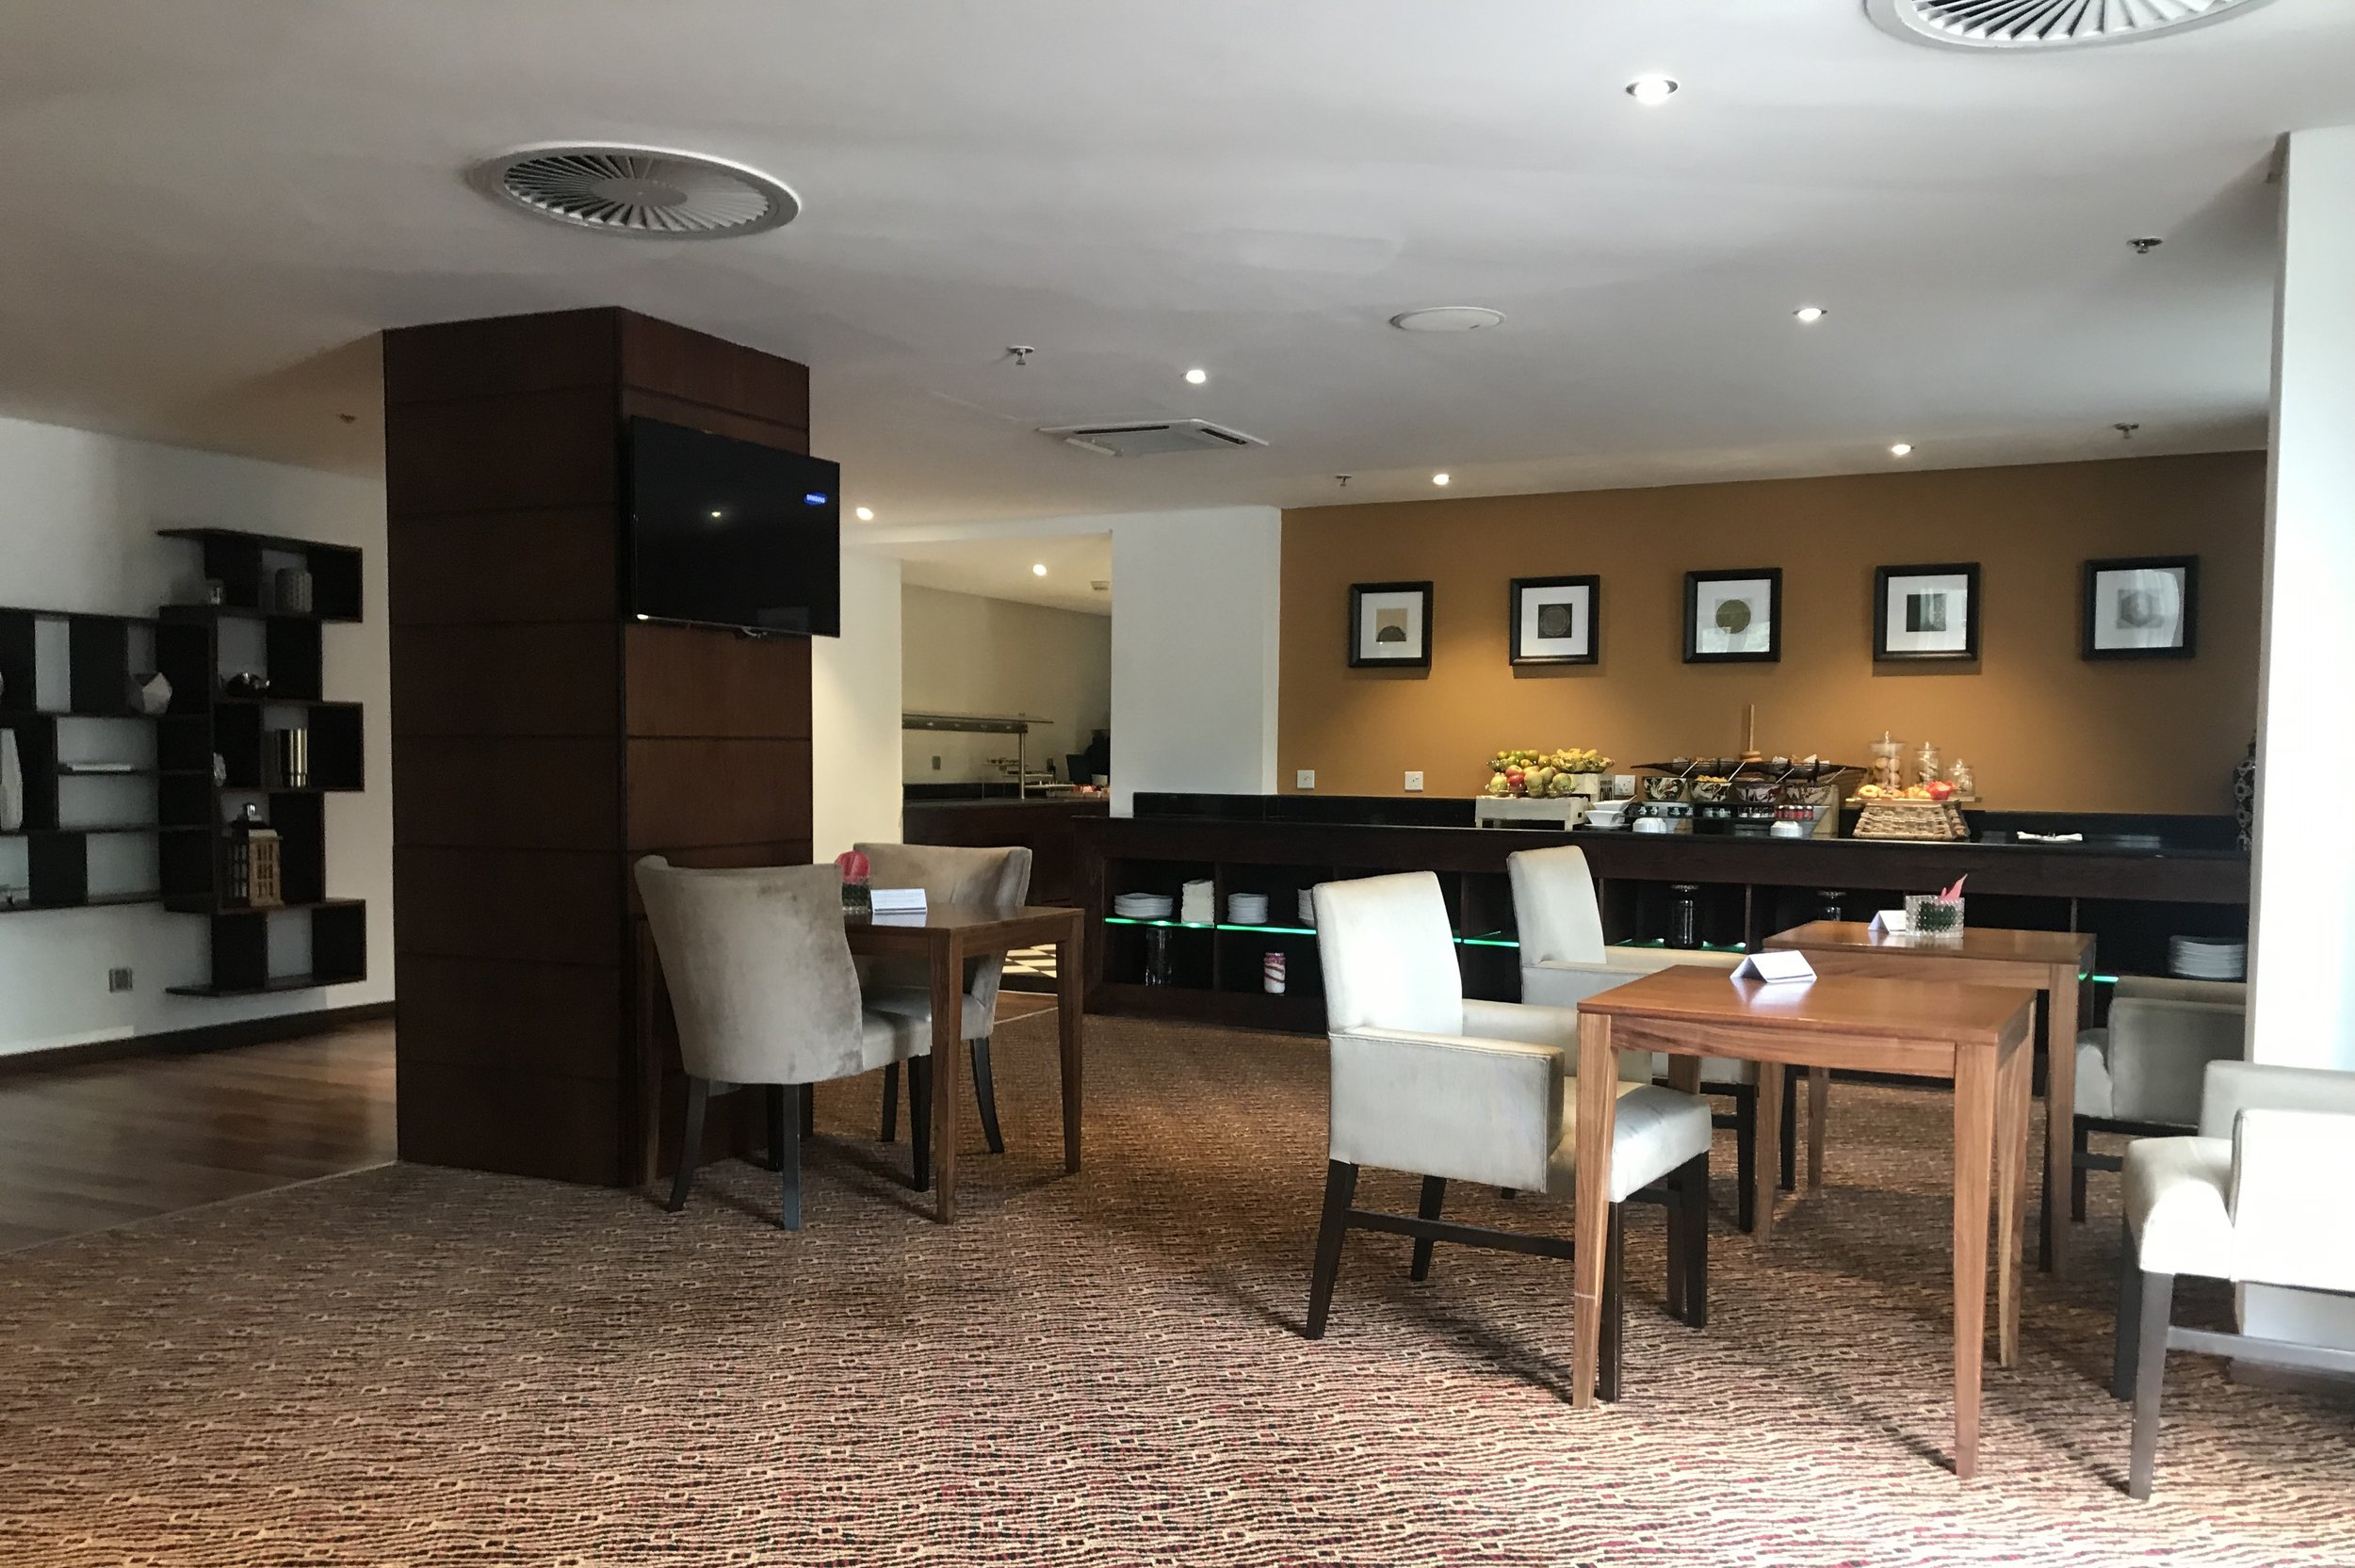 Marriott Accra – Executive Lounge seating area